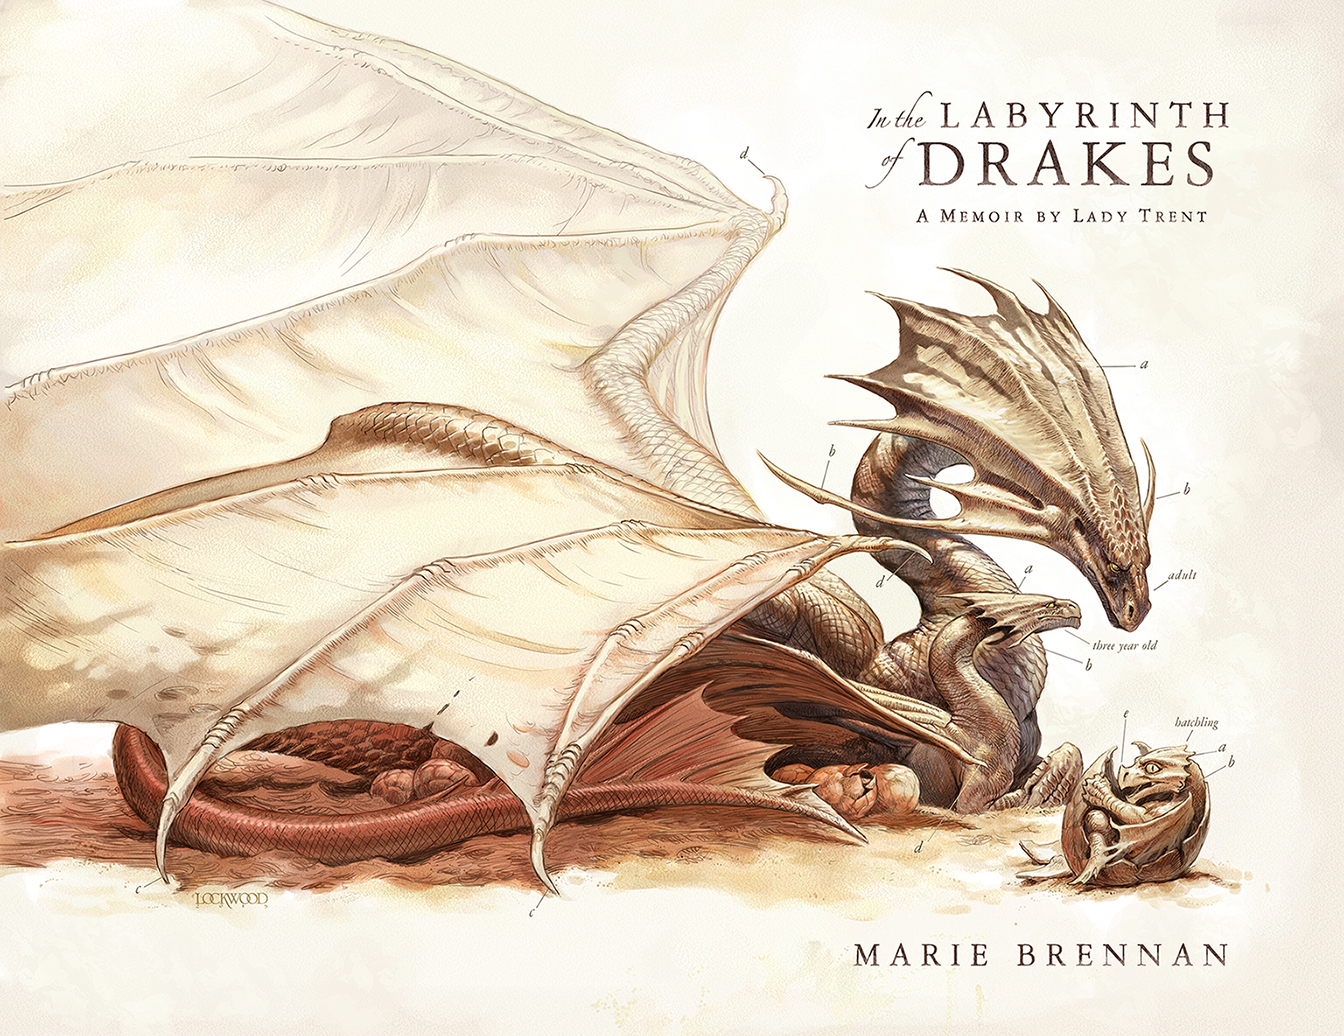 Todd Lockwood In the Labyrinth of Drakes Marie Brennan